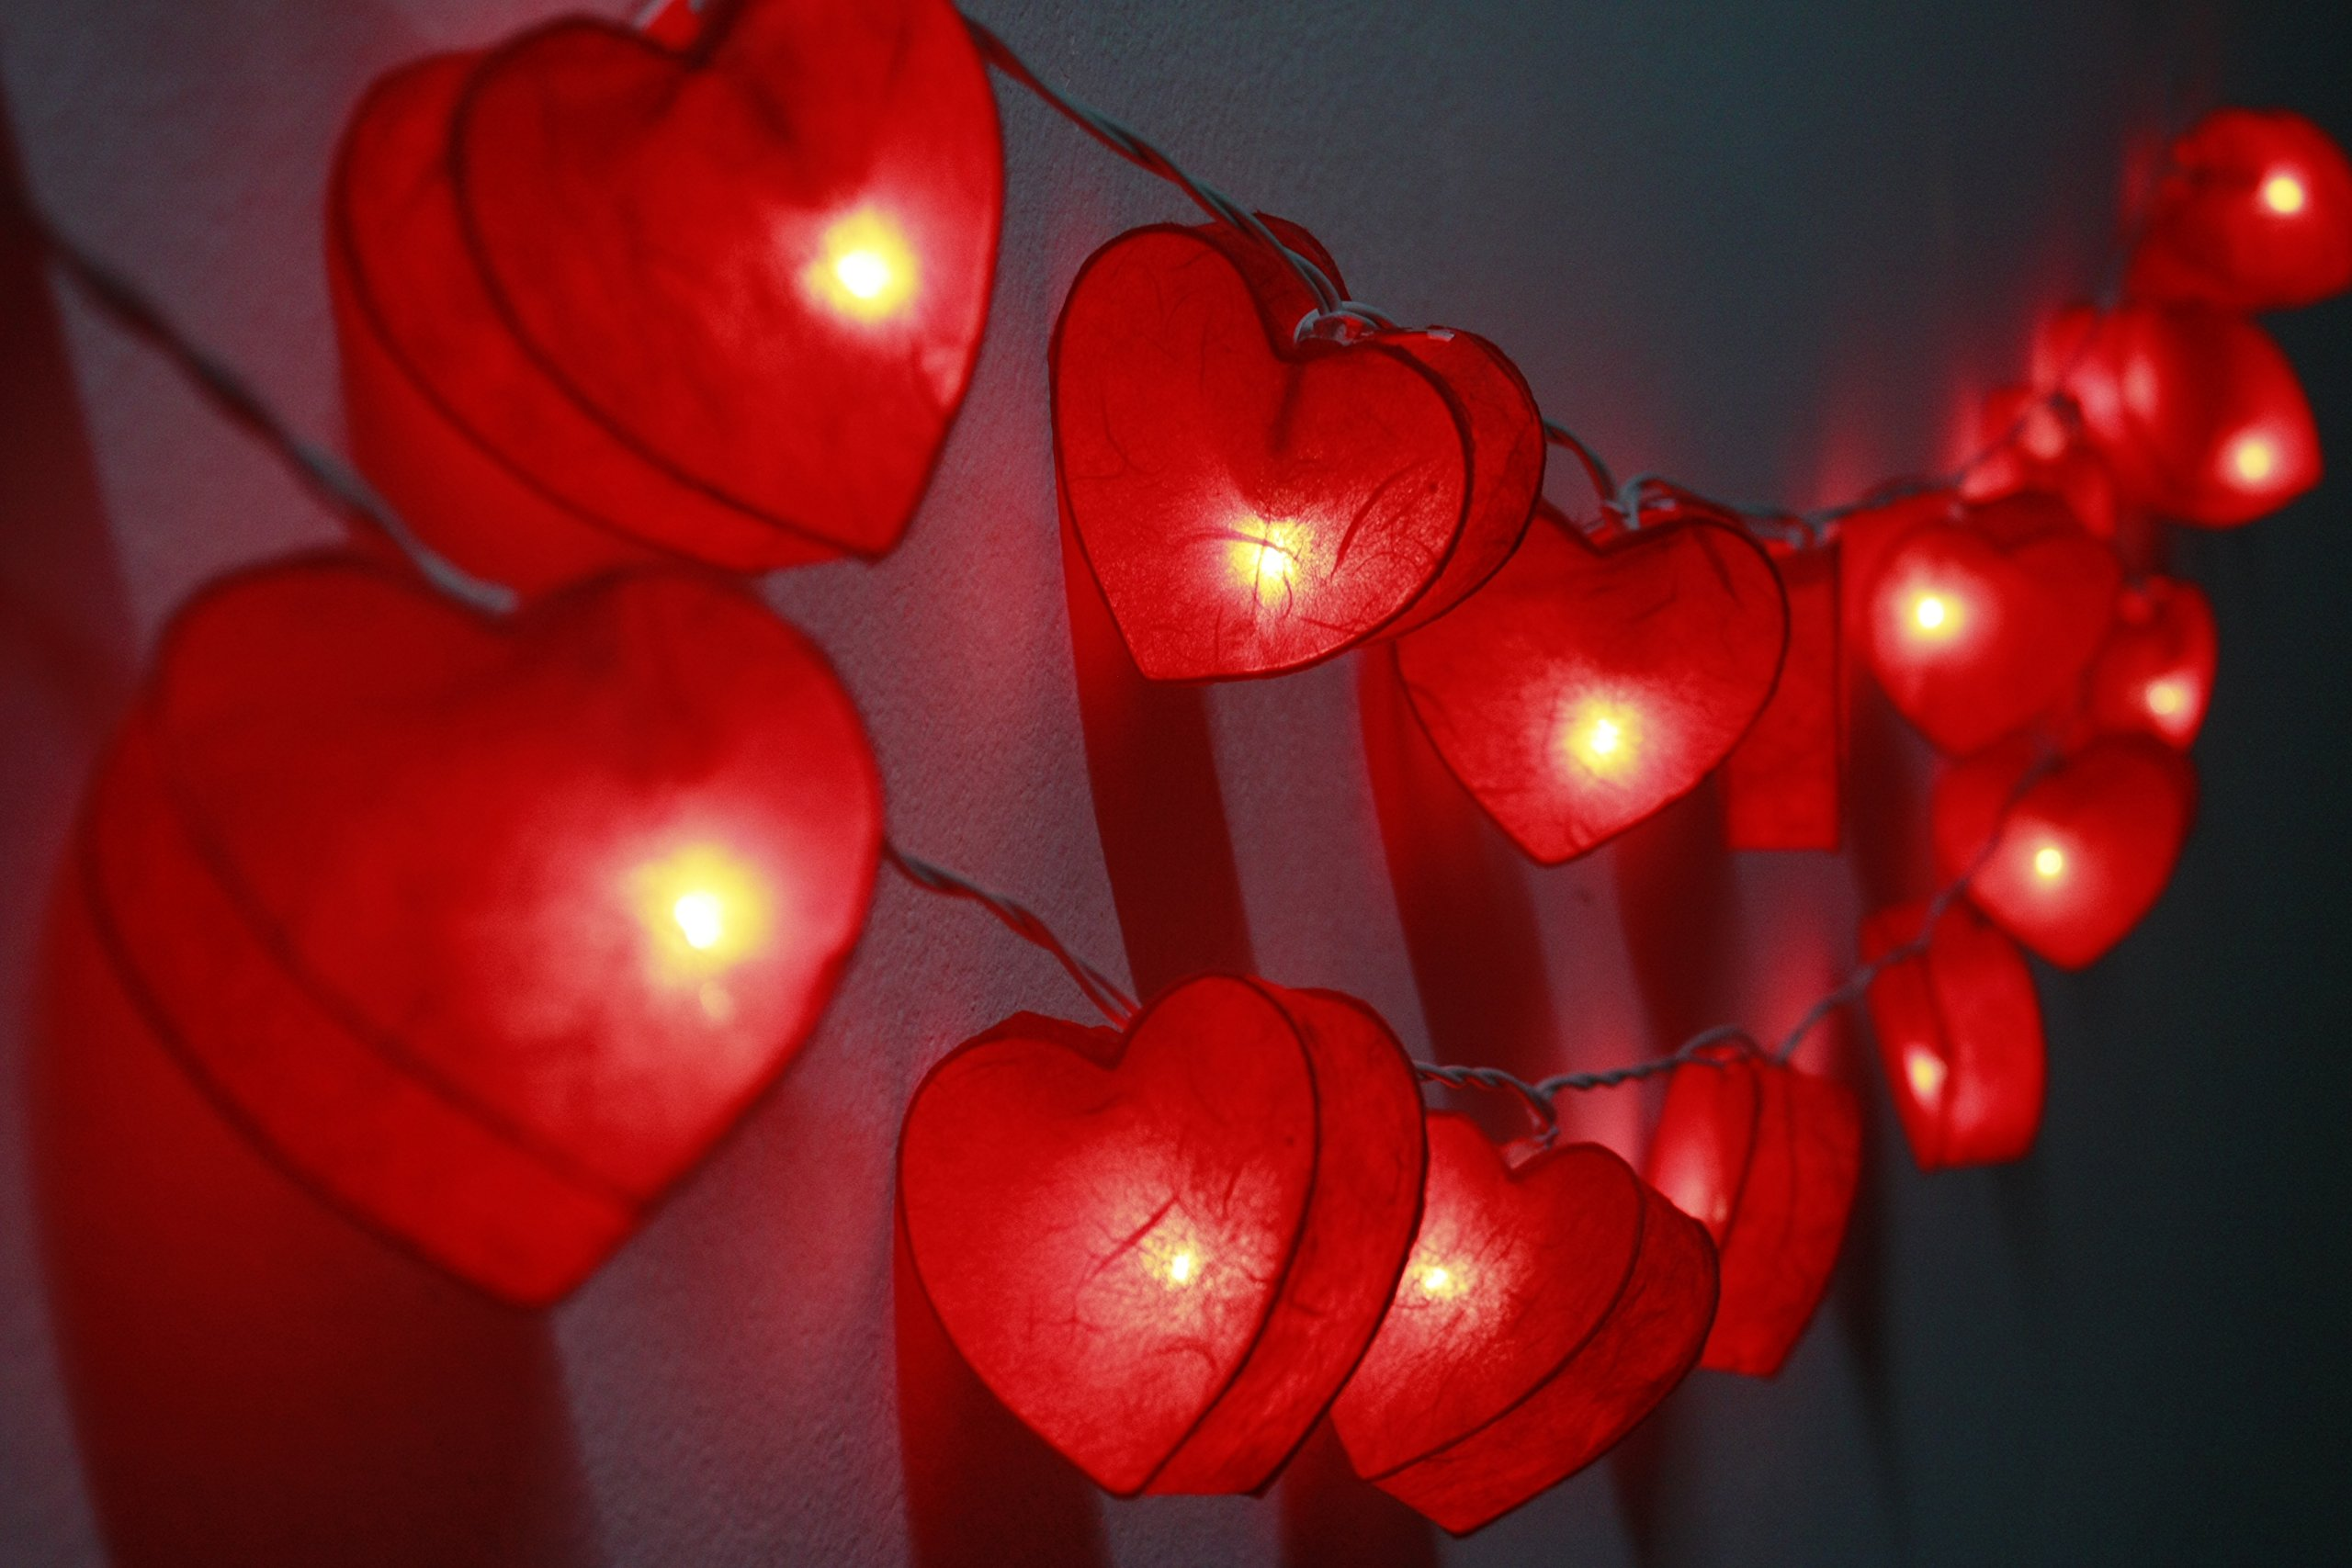 20 Red Heart Paper String Lights String Lights Hanging Wedding Gift Party Patio,bedroom Fairy Lights,home Floral Decor